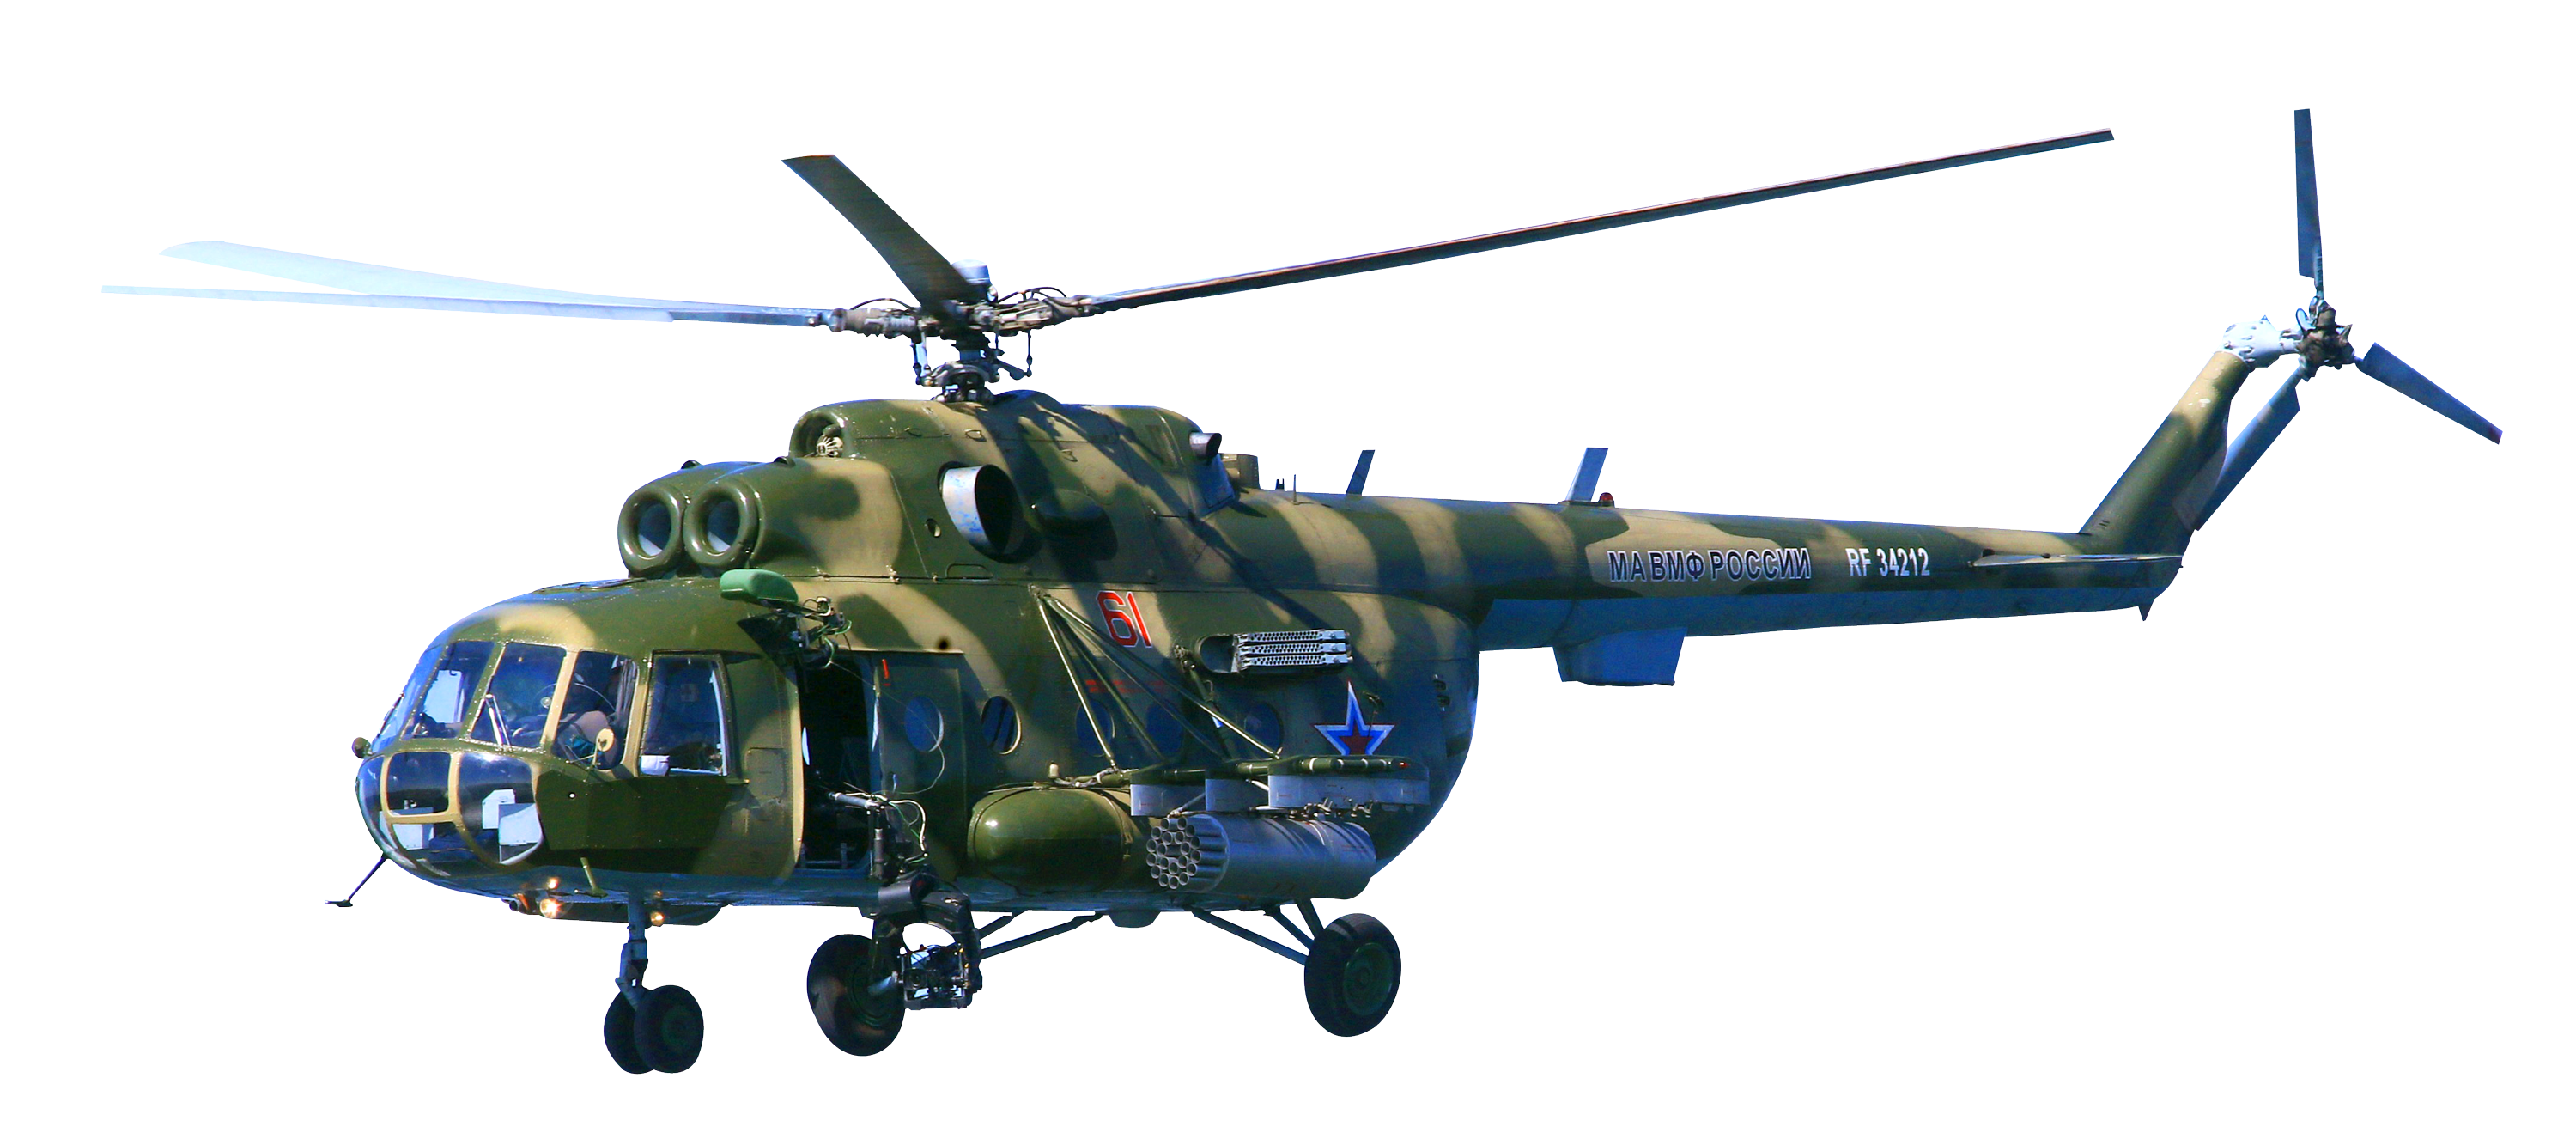 Helicopter Png image #40855